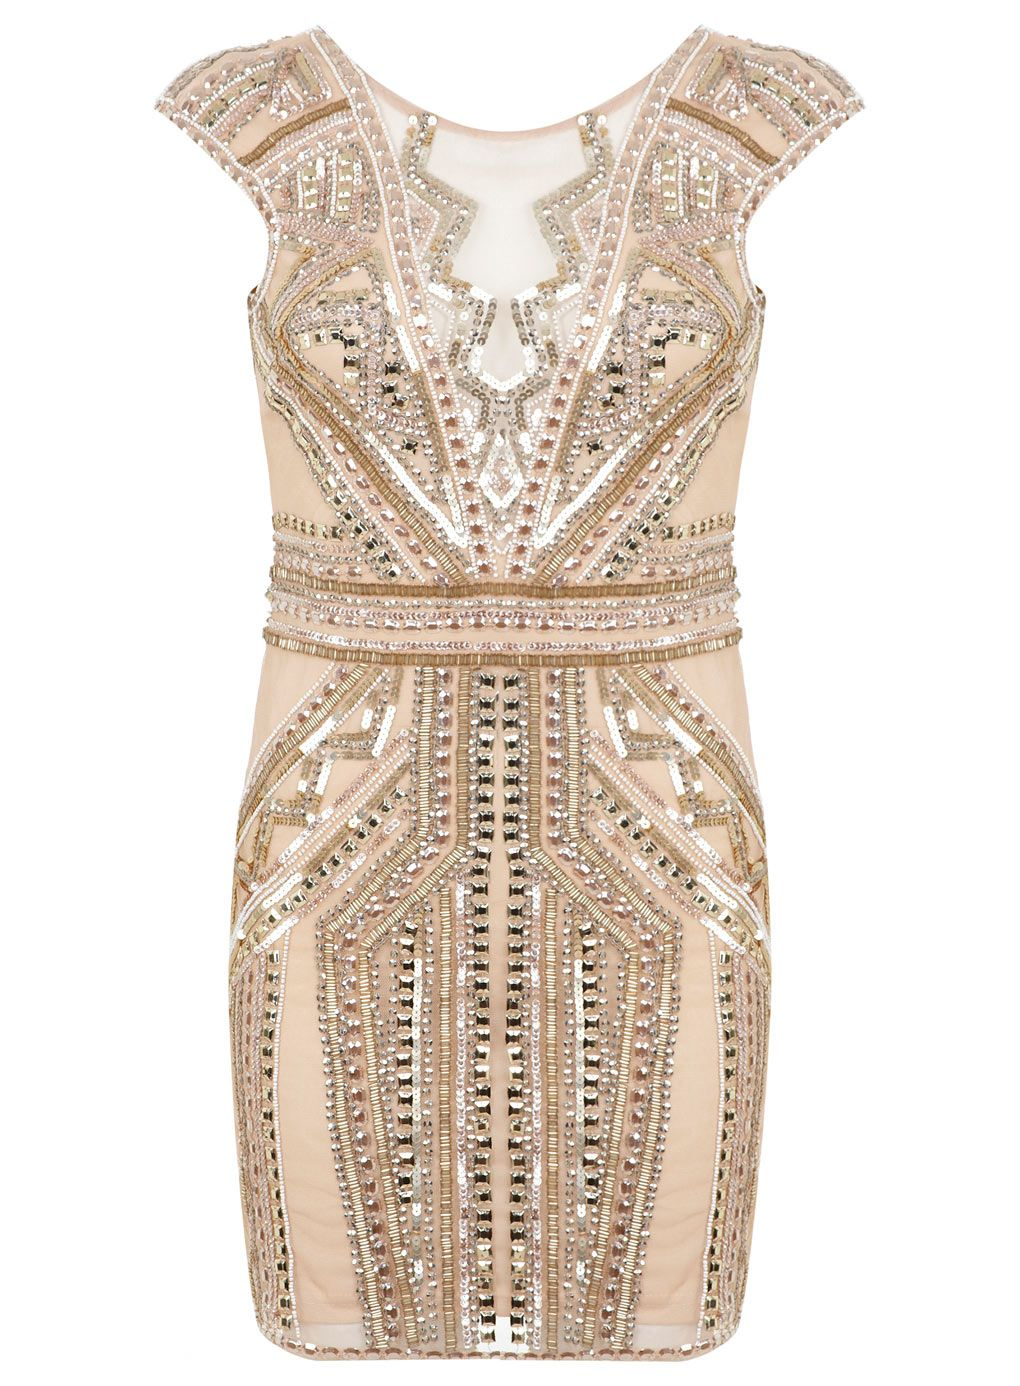 Gatsby party someday? // Petite dress by Miss Selfridge | Dresses ...